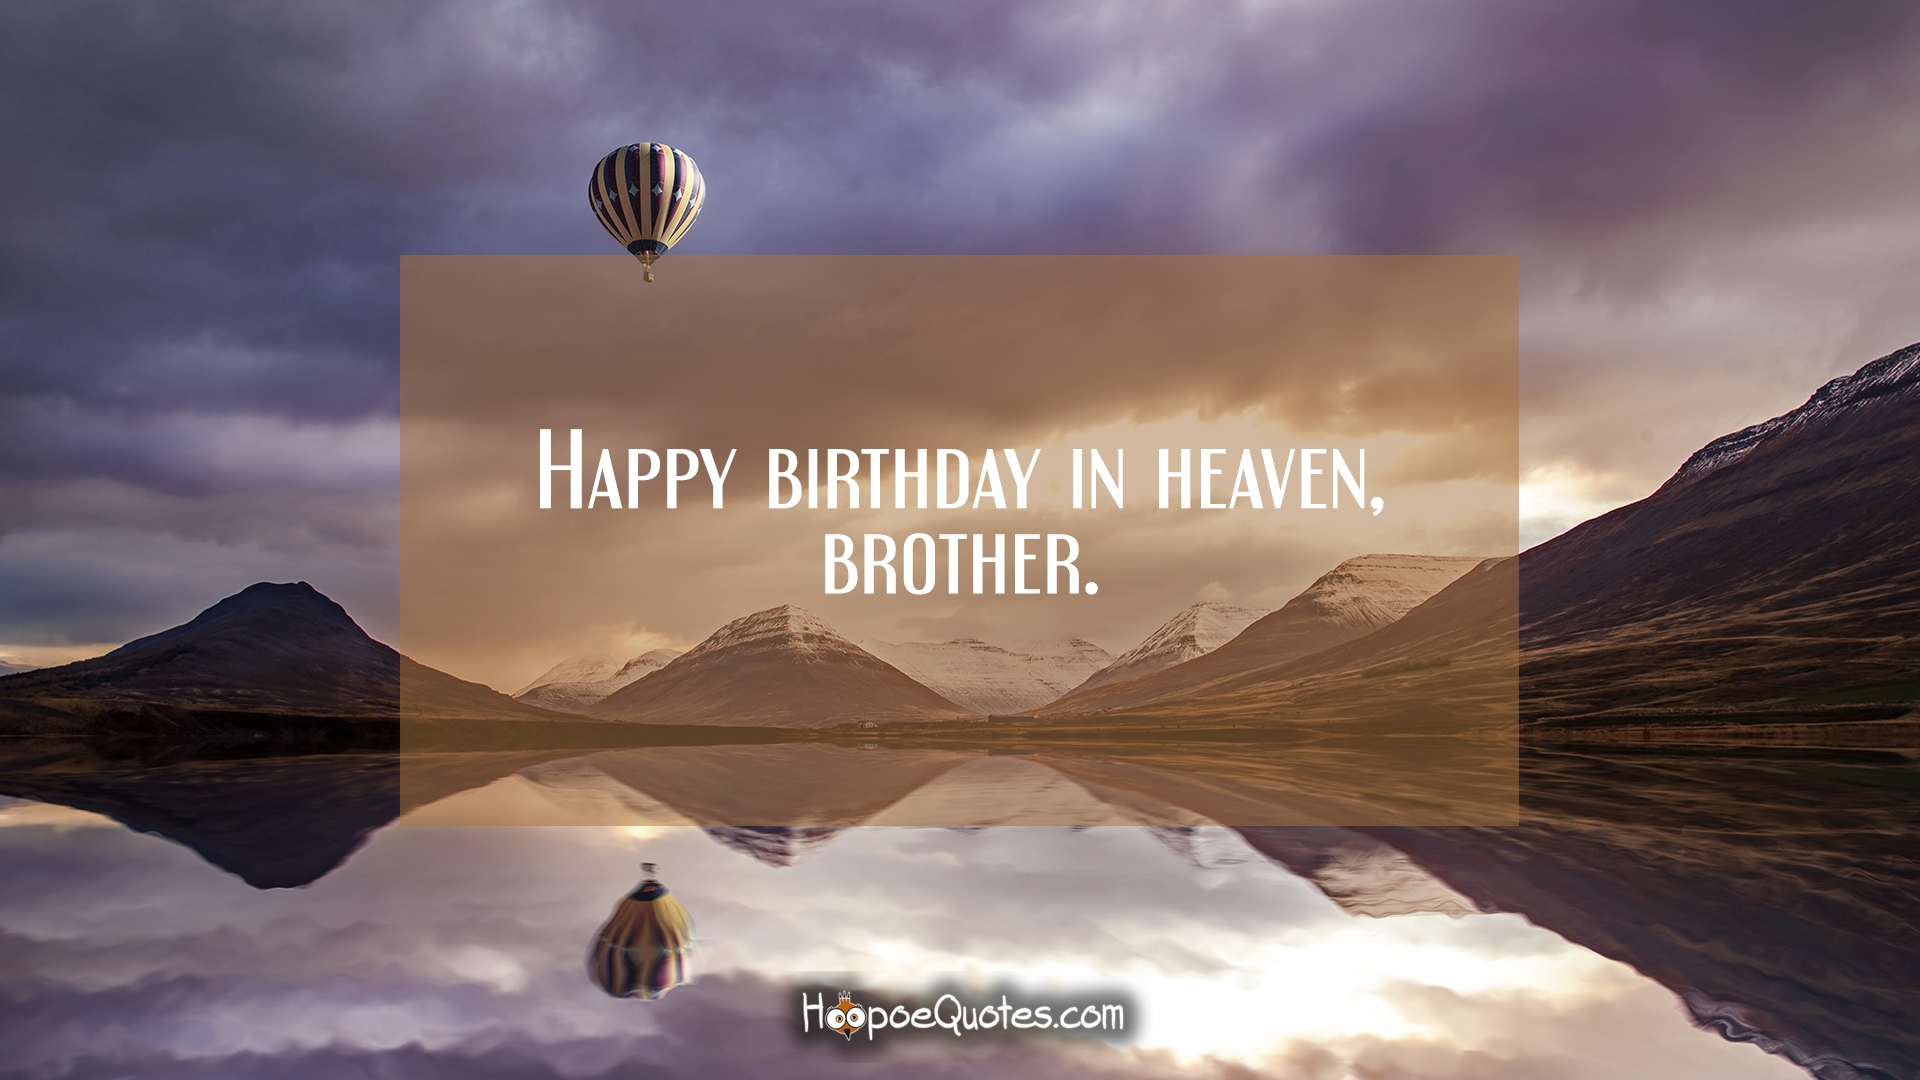 Happy Birthday In Heaven Brother Hoopoequotes